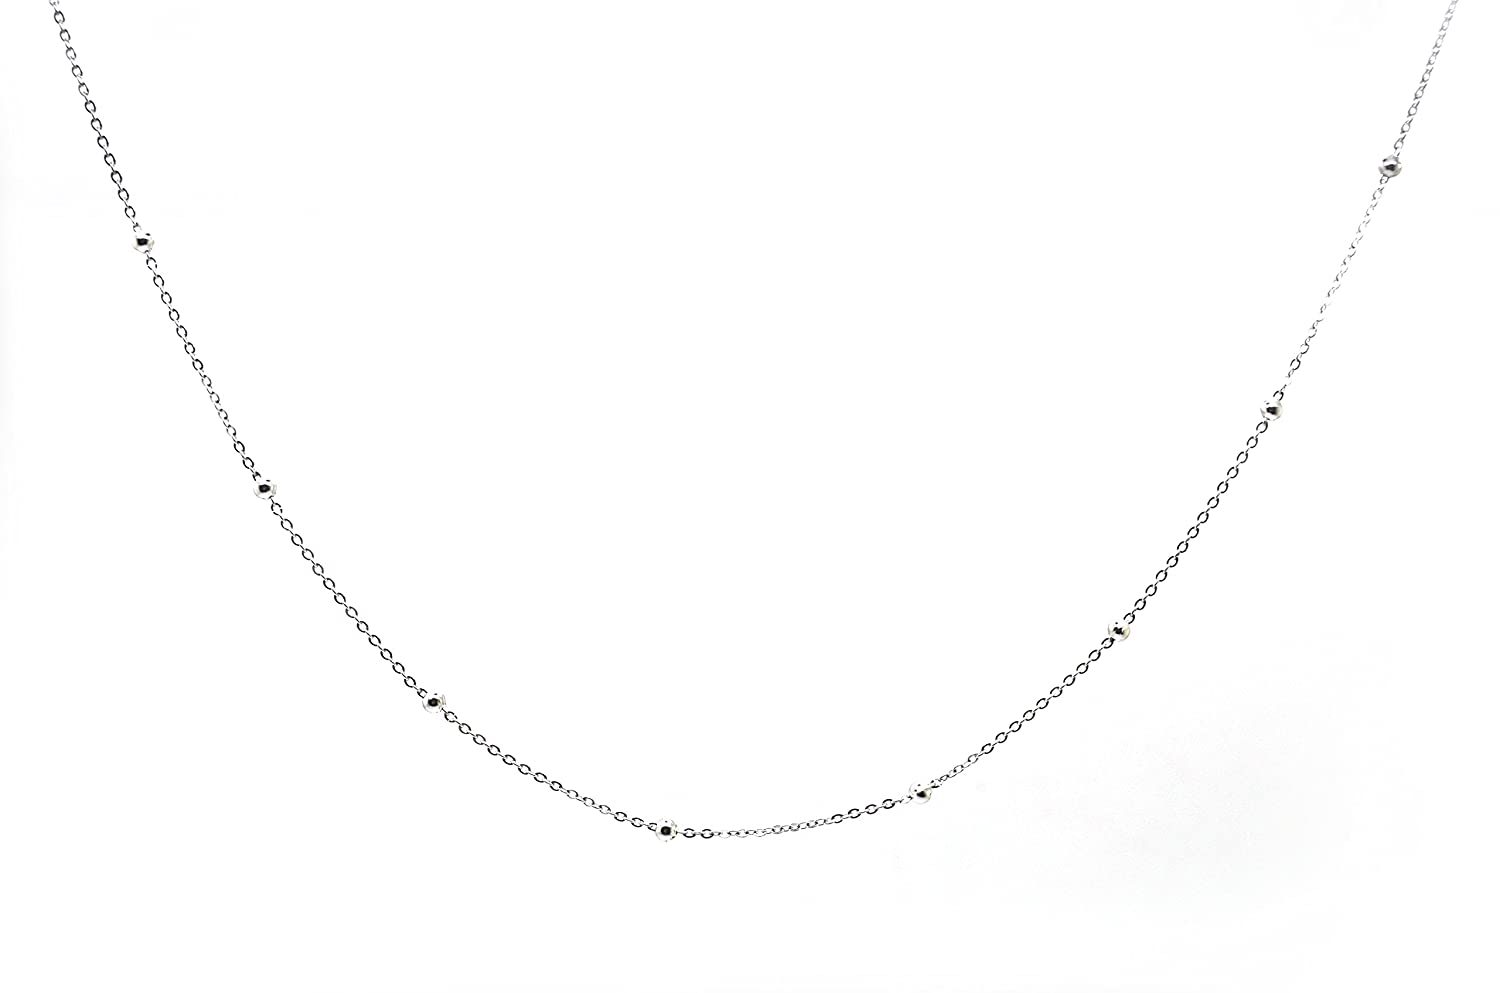 18K White Gold - 18 Inches Millardo Jewelry Basic Collections 1.2mm Wide 18K White Gold Ultra Thin Cable Chain With Beads Chain Necklace